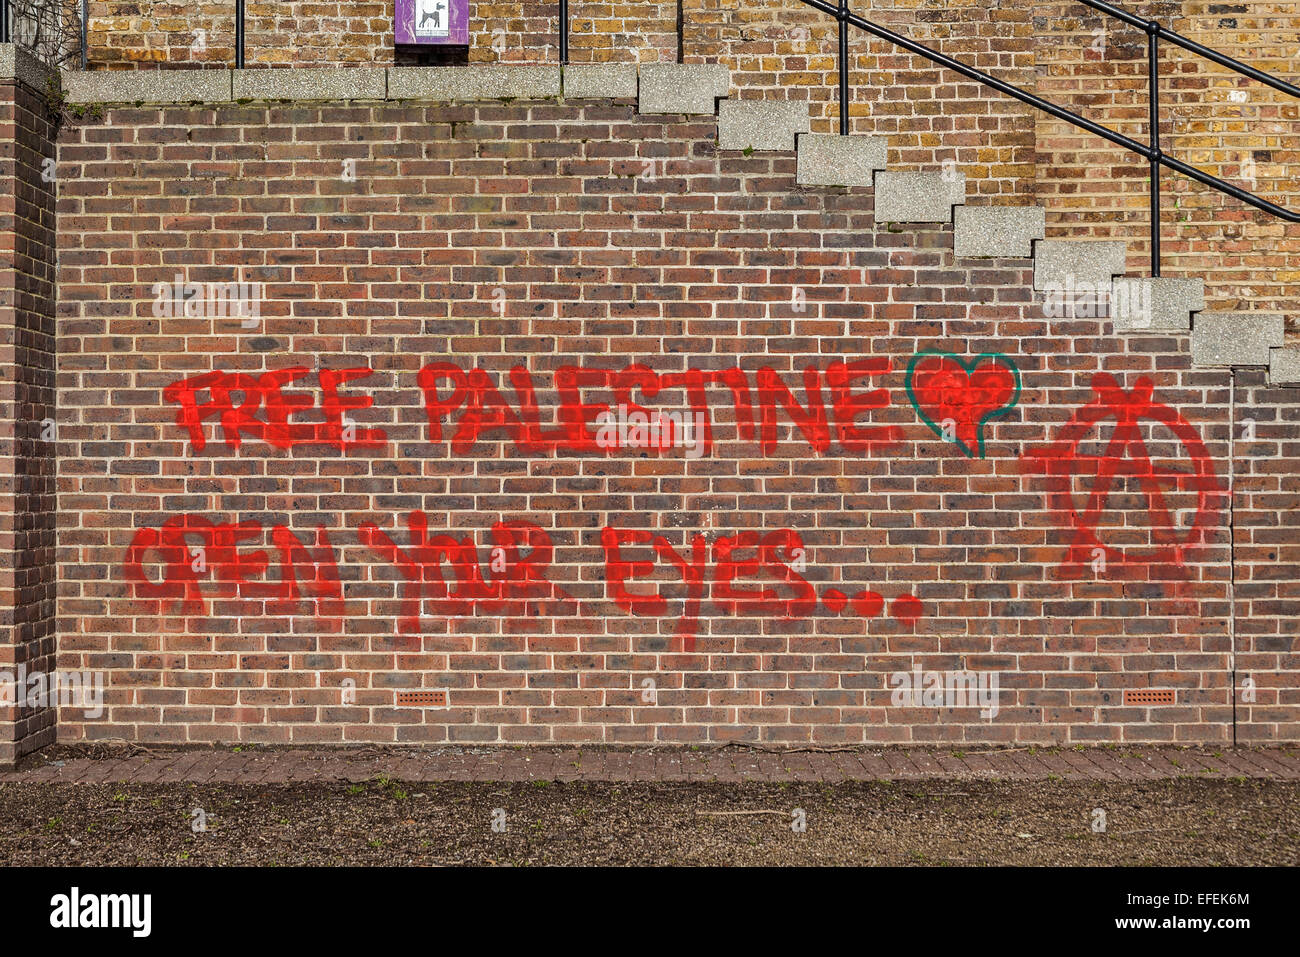 London, Shadwell   An anarchist message on a wall at Shadwell Basin - Stock Image